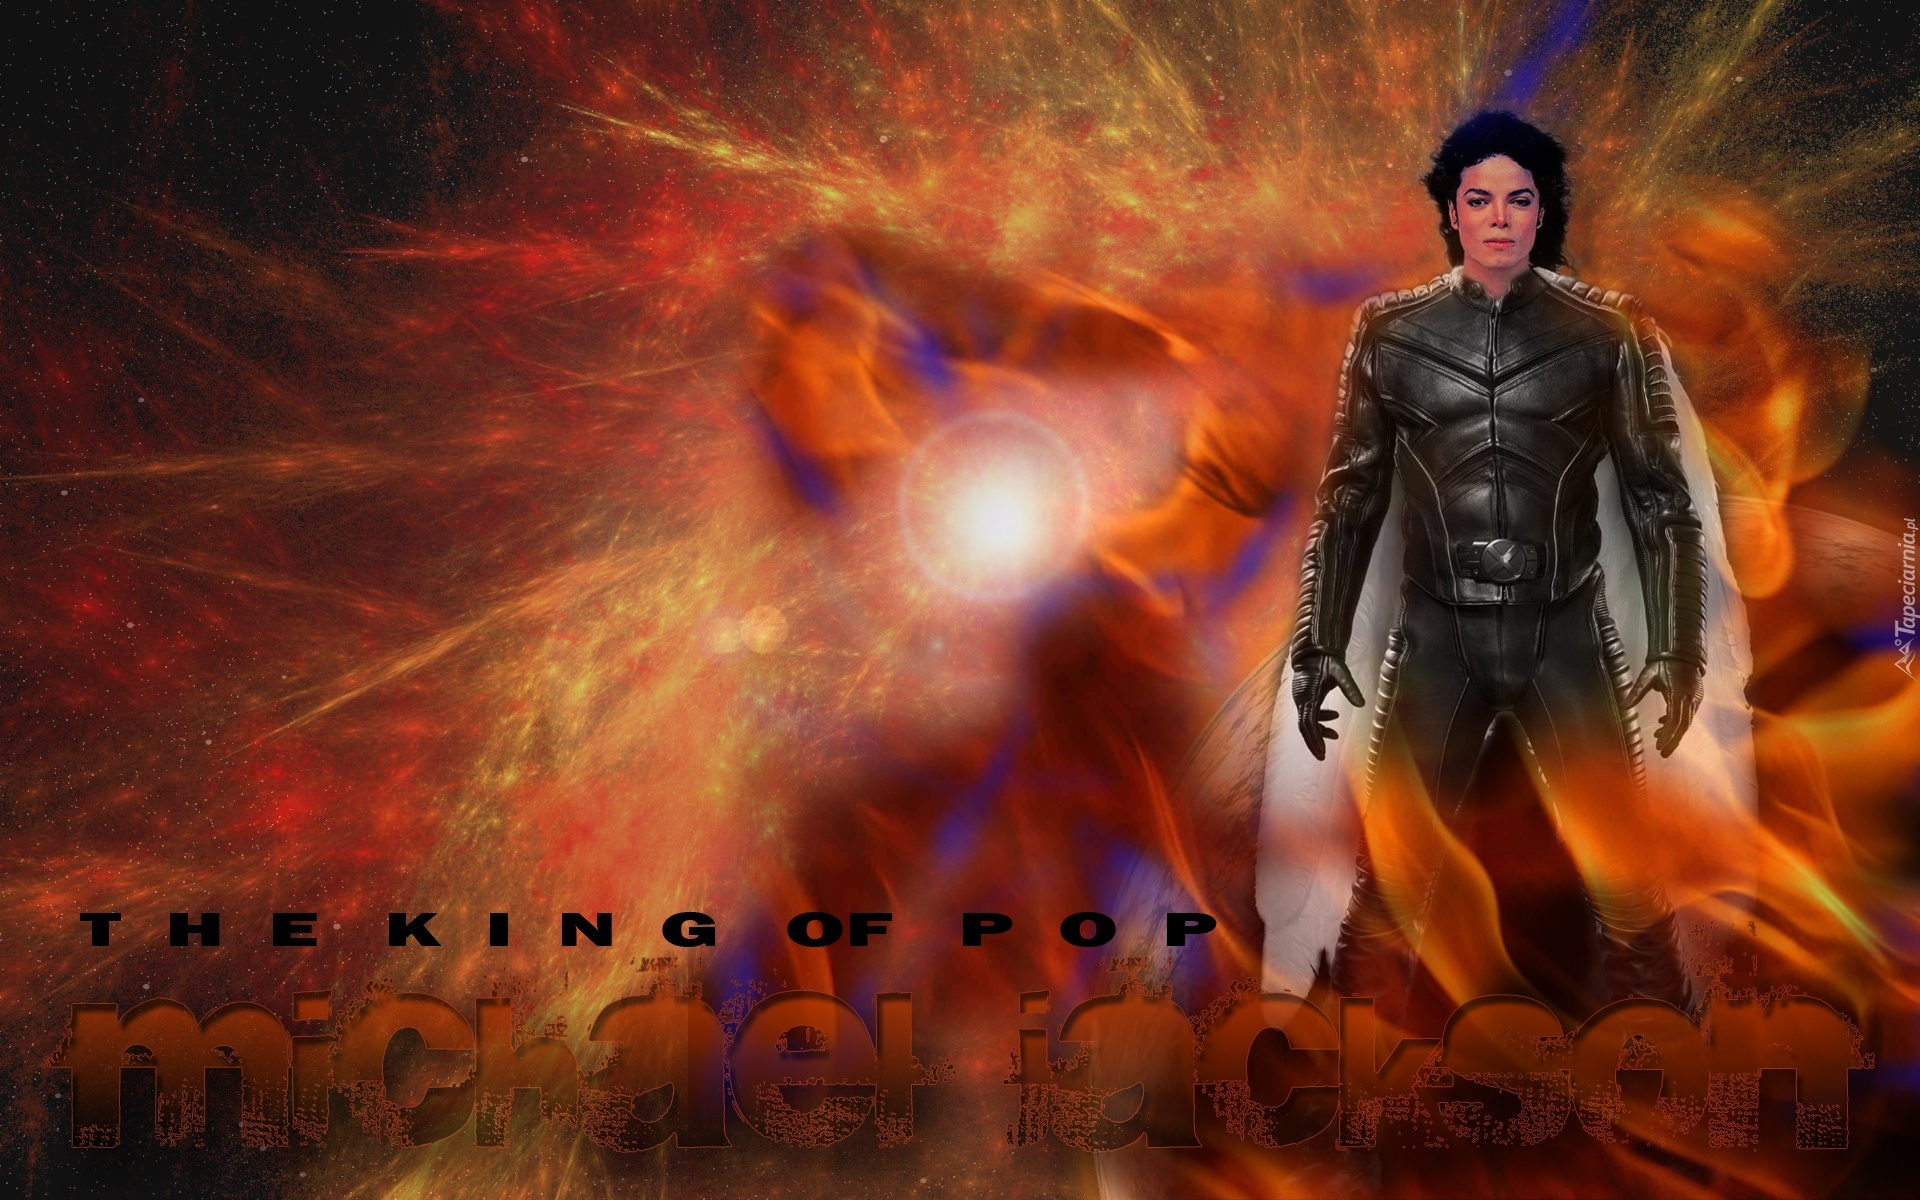 Michael Jackson, The King of pop